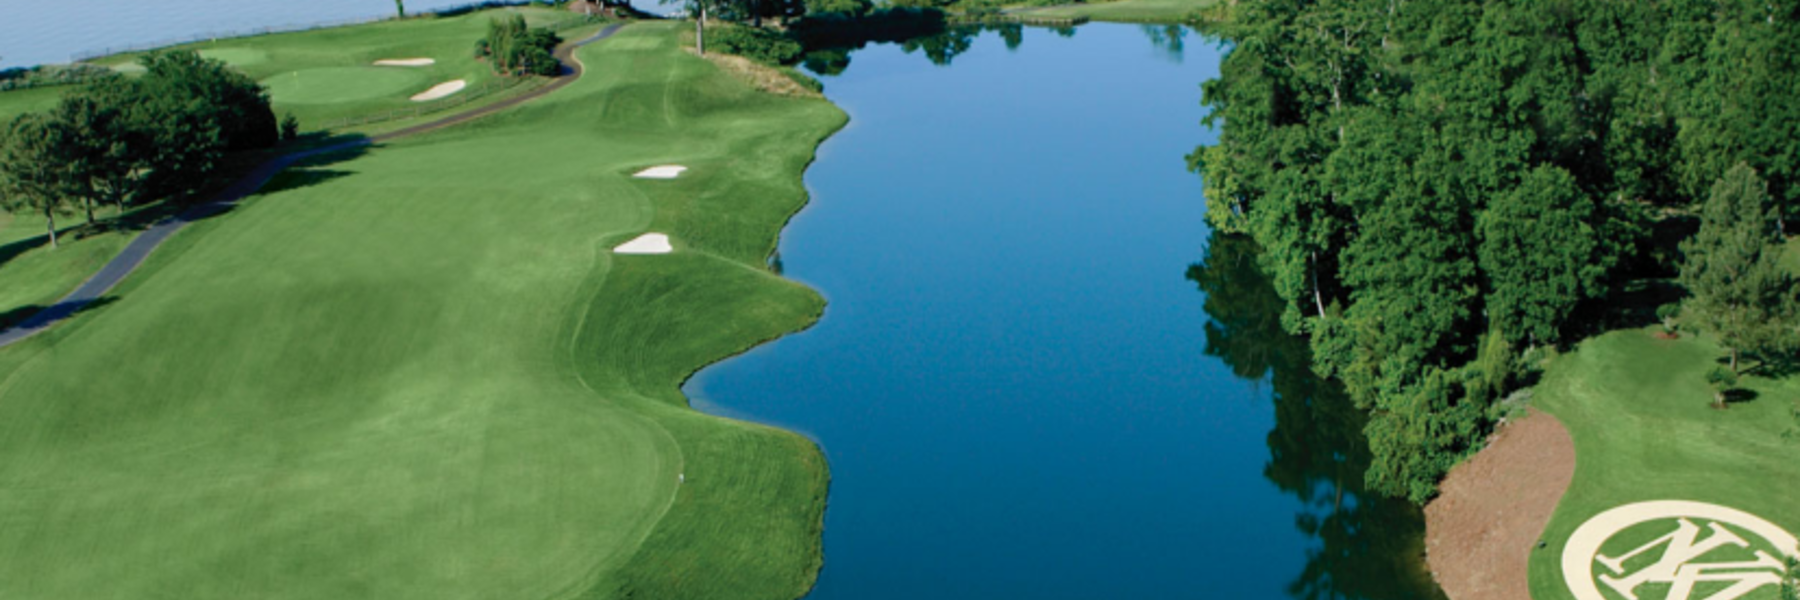 Golf Vacation Package - Kingsmill Resort - Condo and Golf from $174 per person, per day!